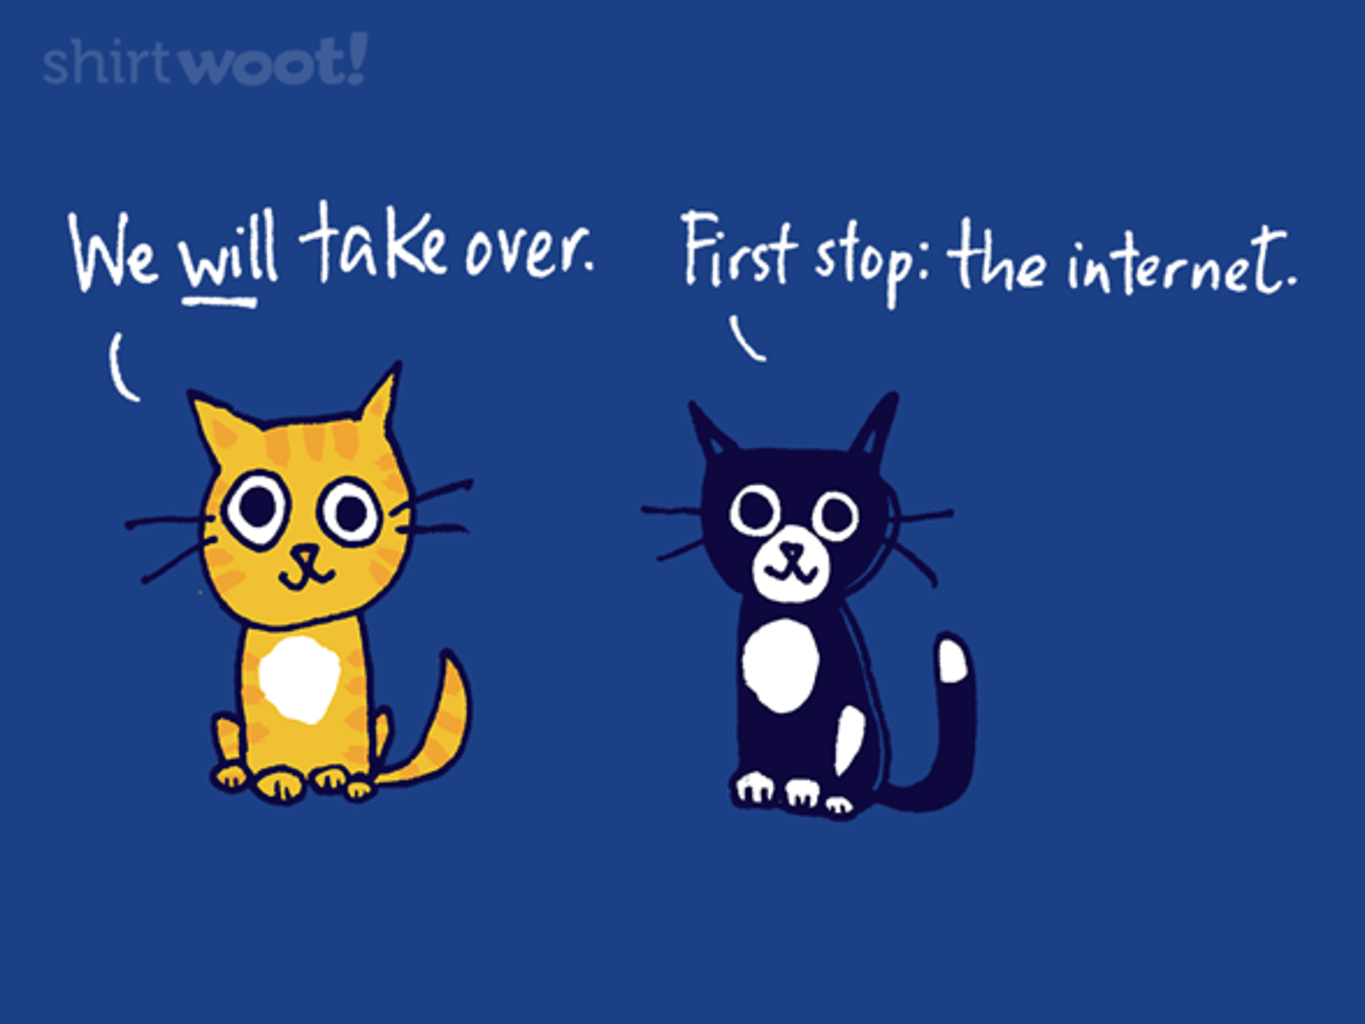 Woot!: Cats Take Over the Internet